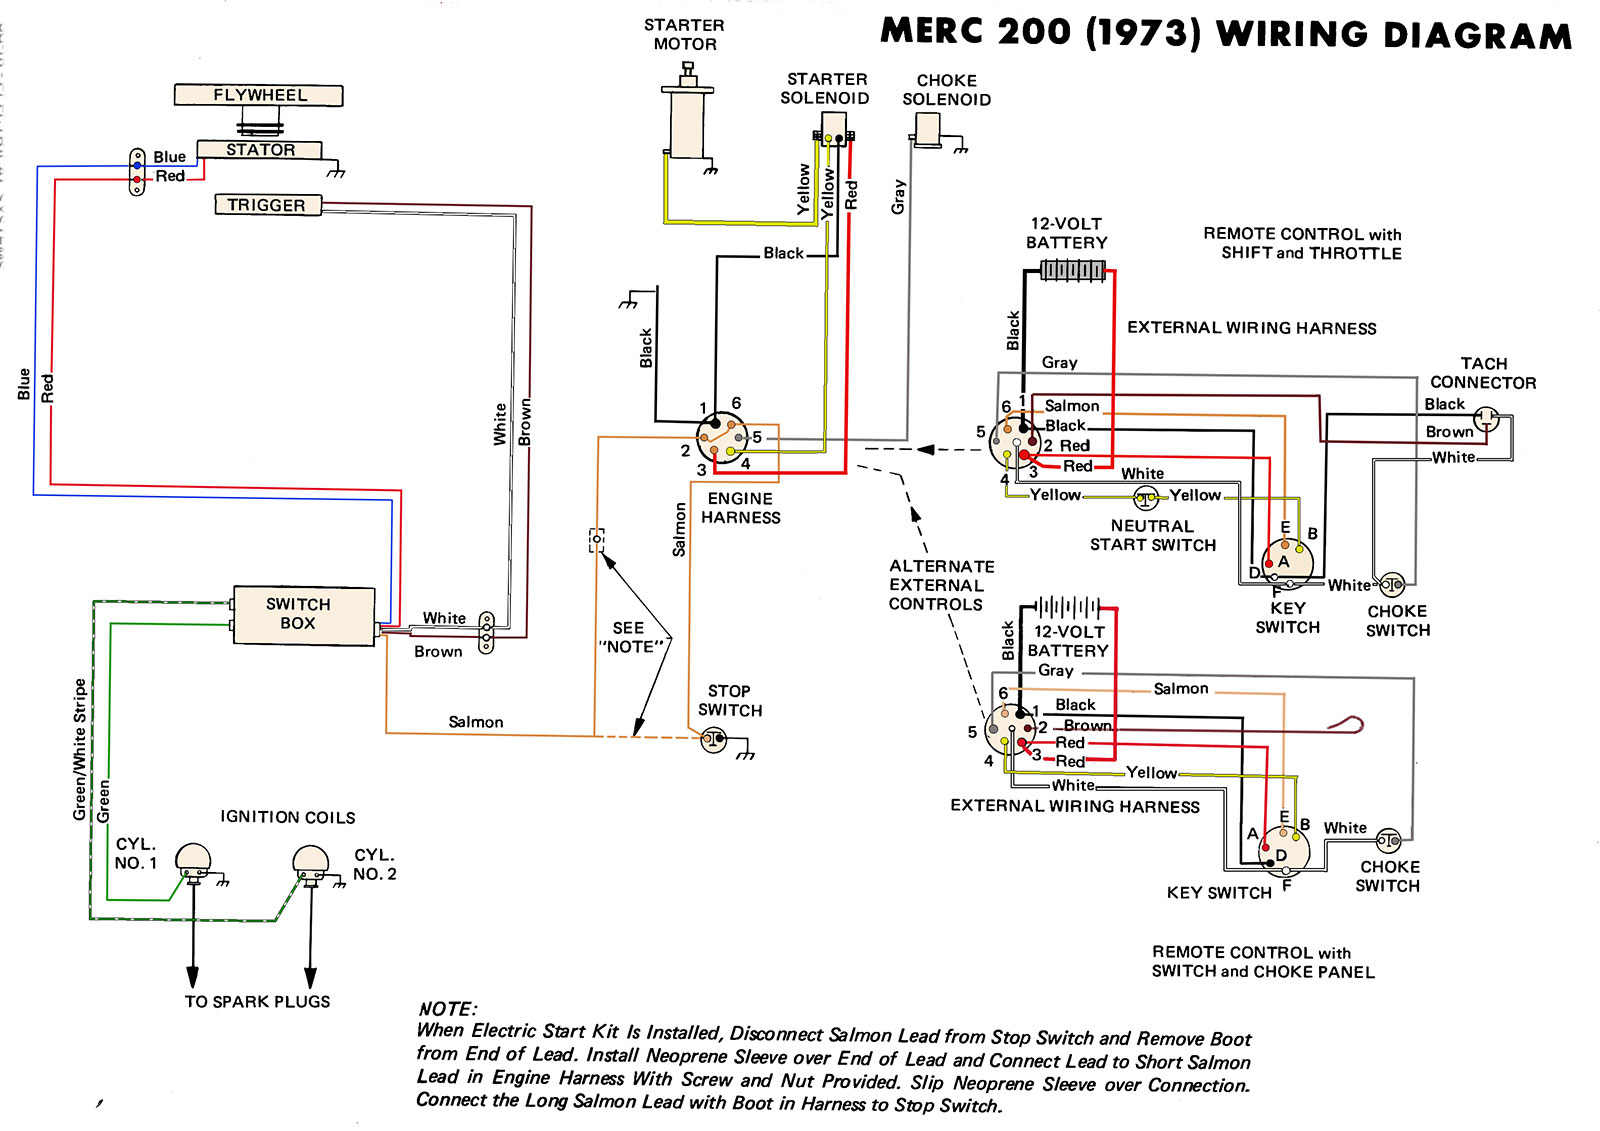 75 ford ignition module wiring diagram free download wiring diagramevinrude remote control wiring diagram 1 wiring diagram source 75 ford ignition module wiring diagram free